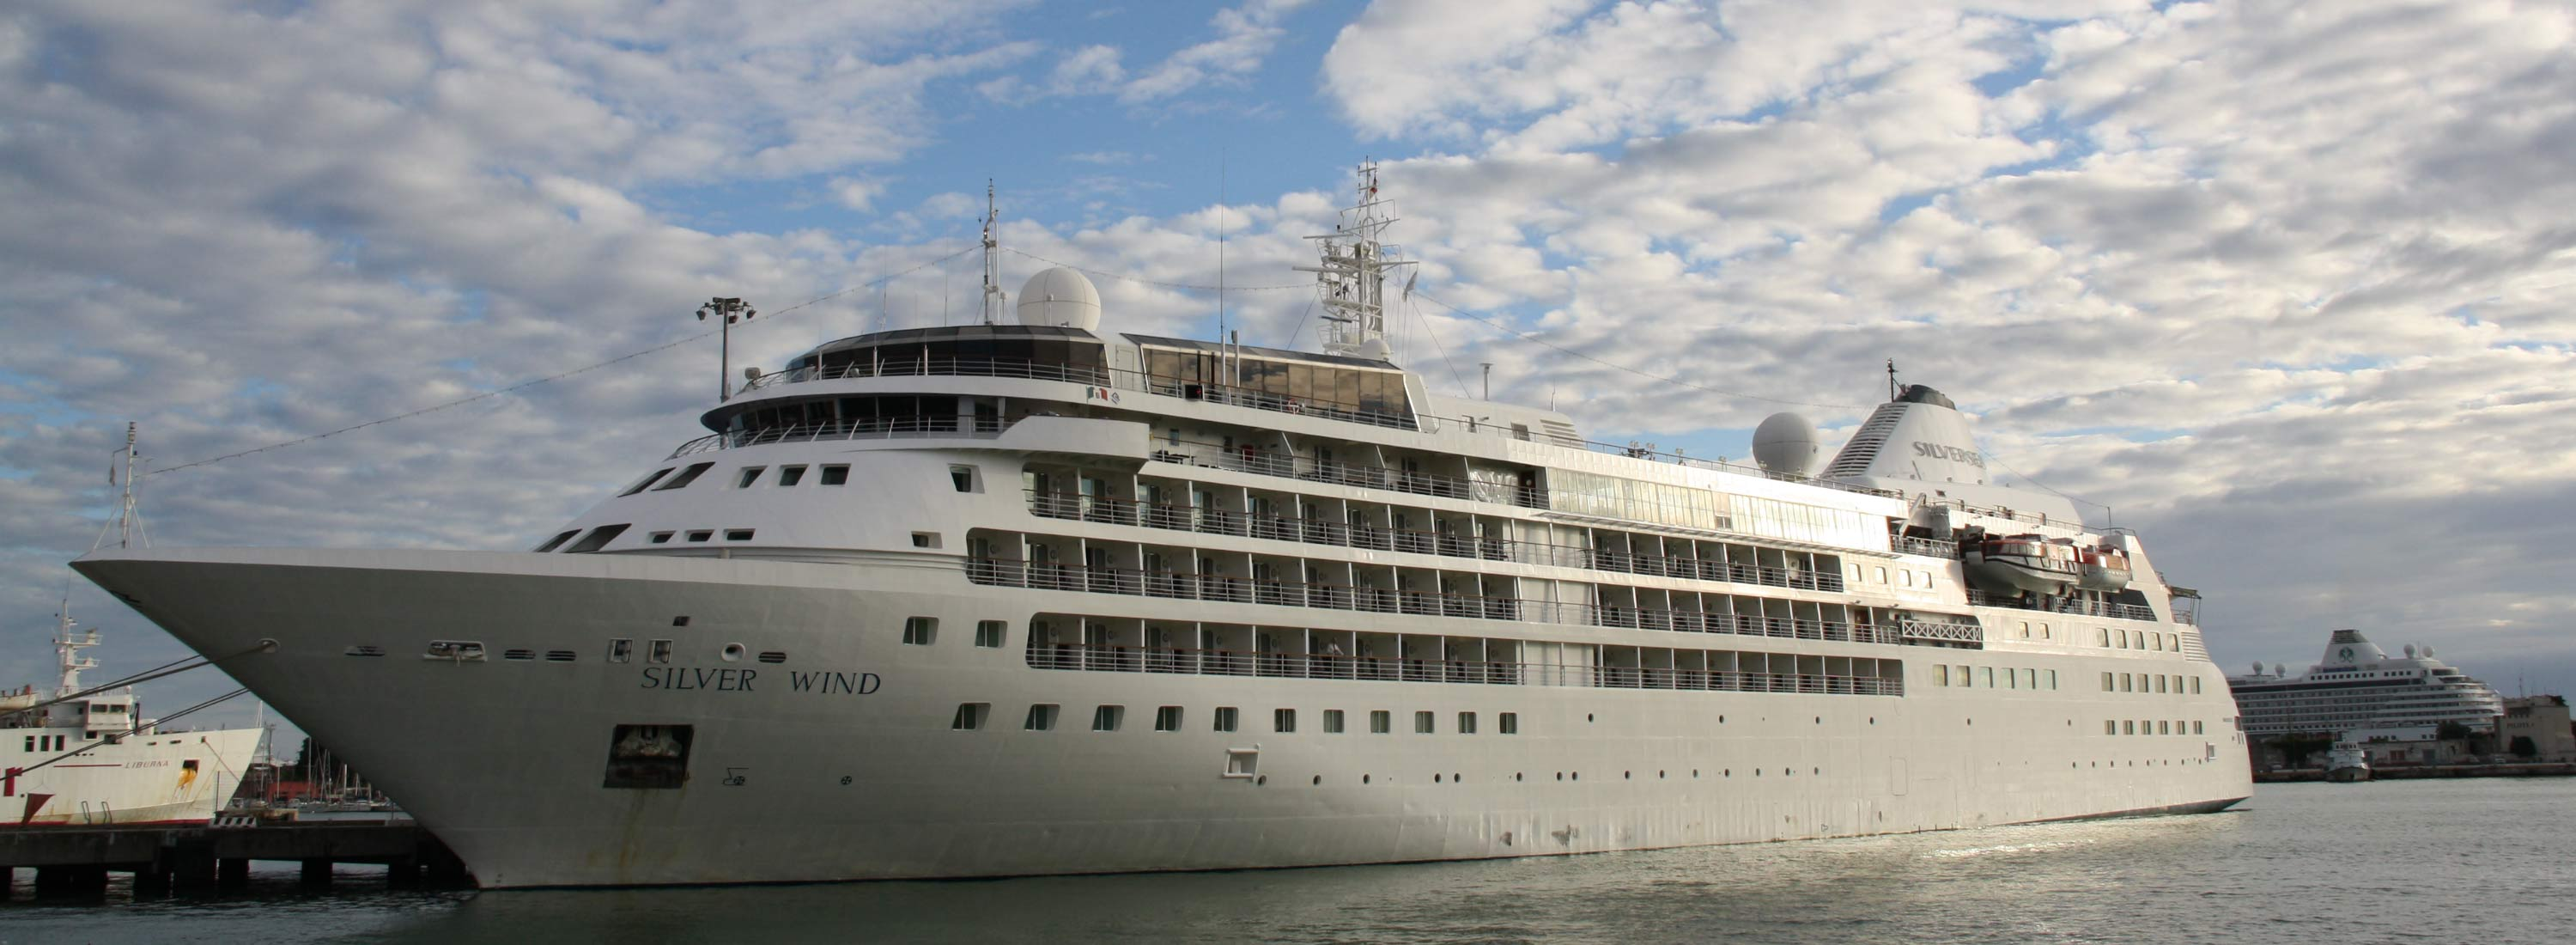 SIlversea - * Flash Cruise Sale